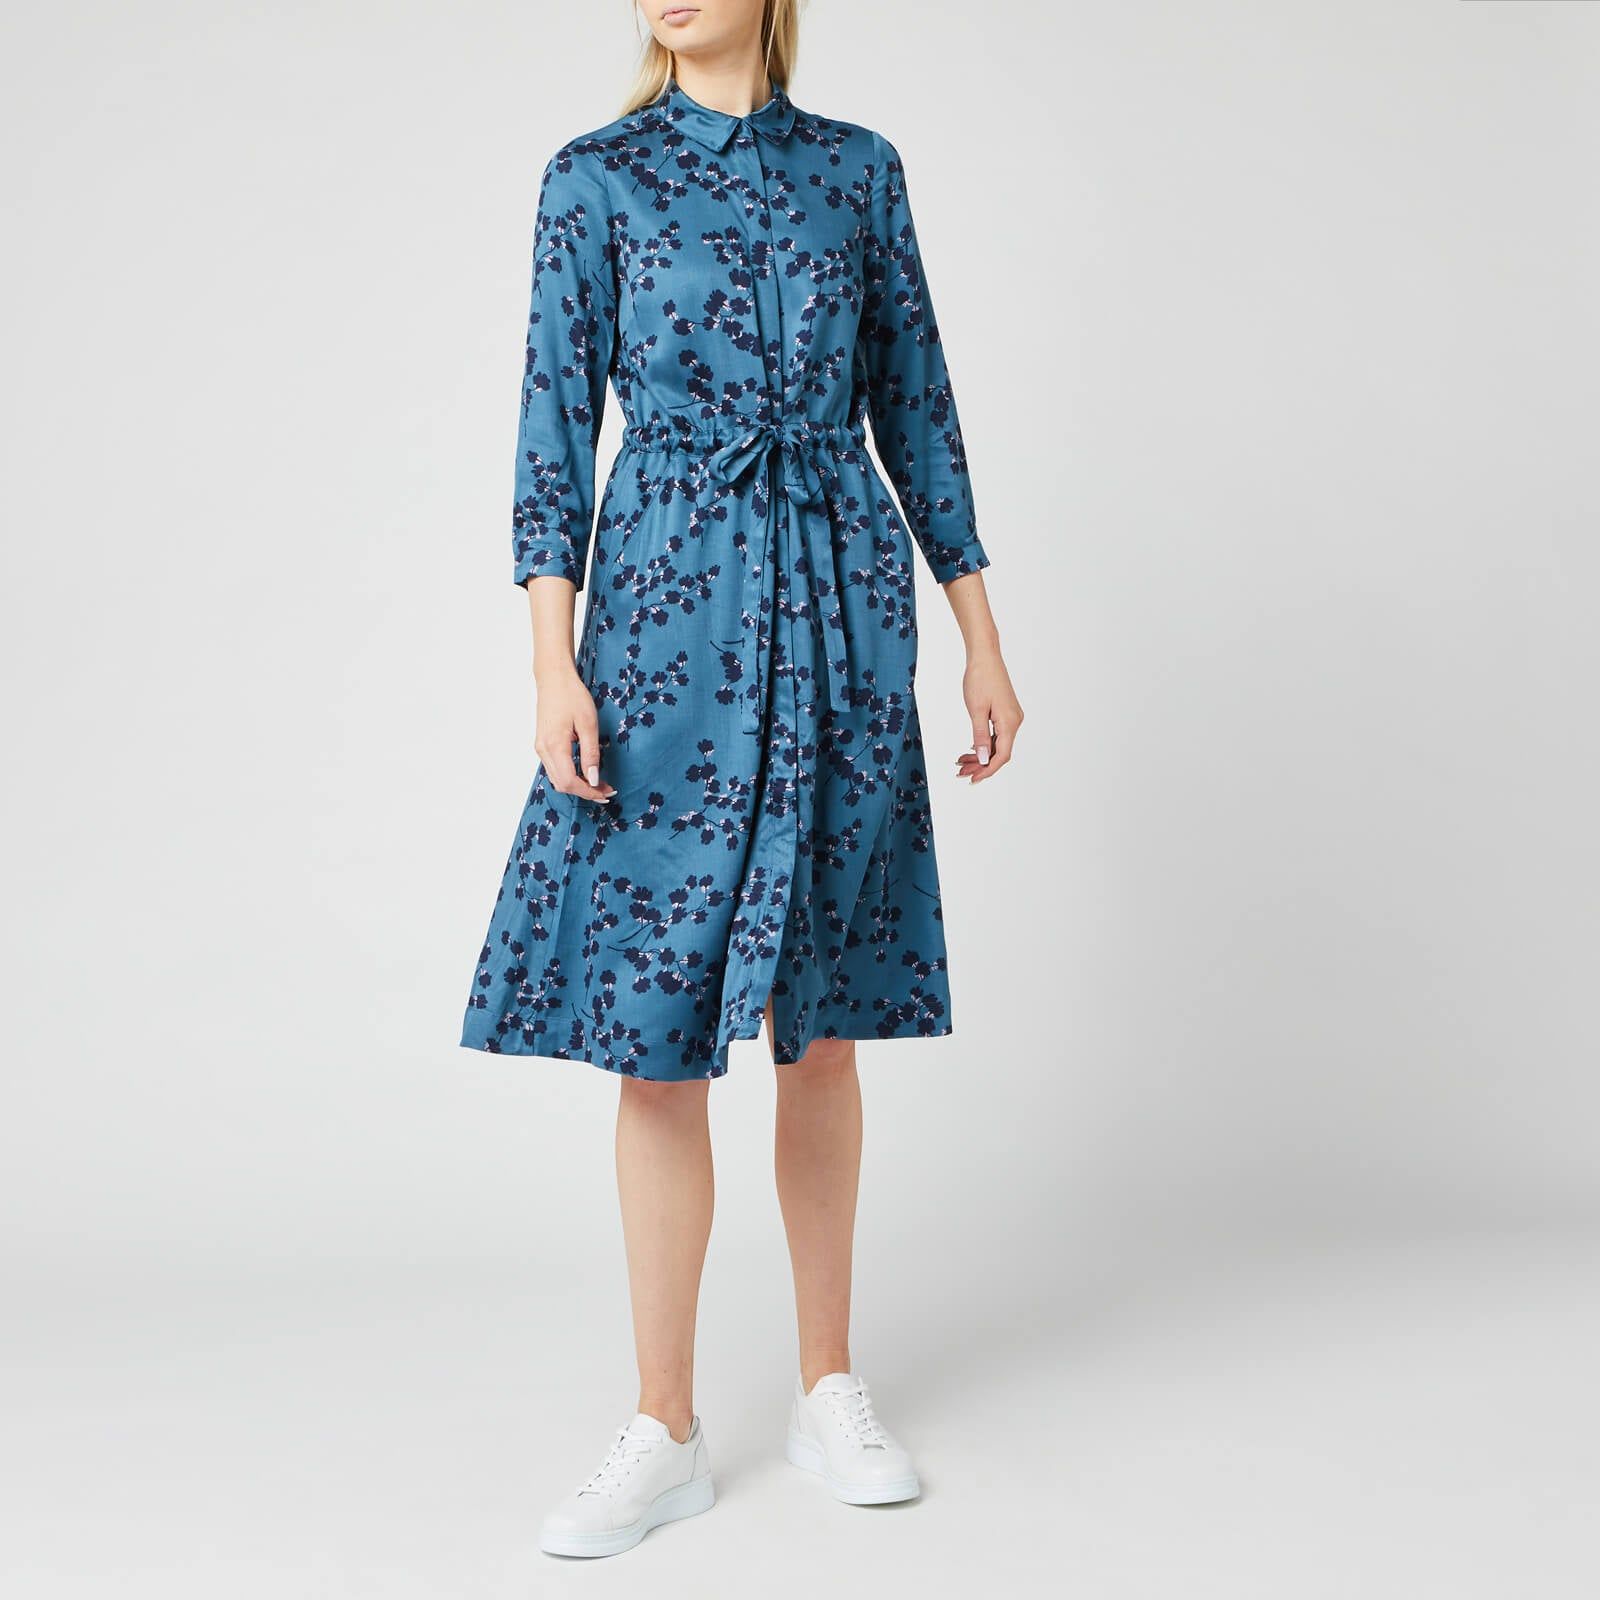 Long sleeve Shirt Dress in Teal Blossom